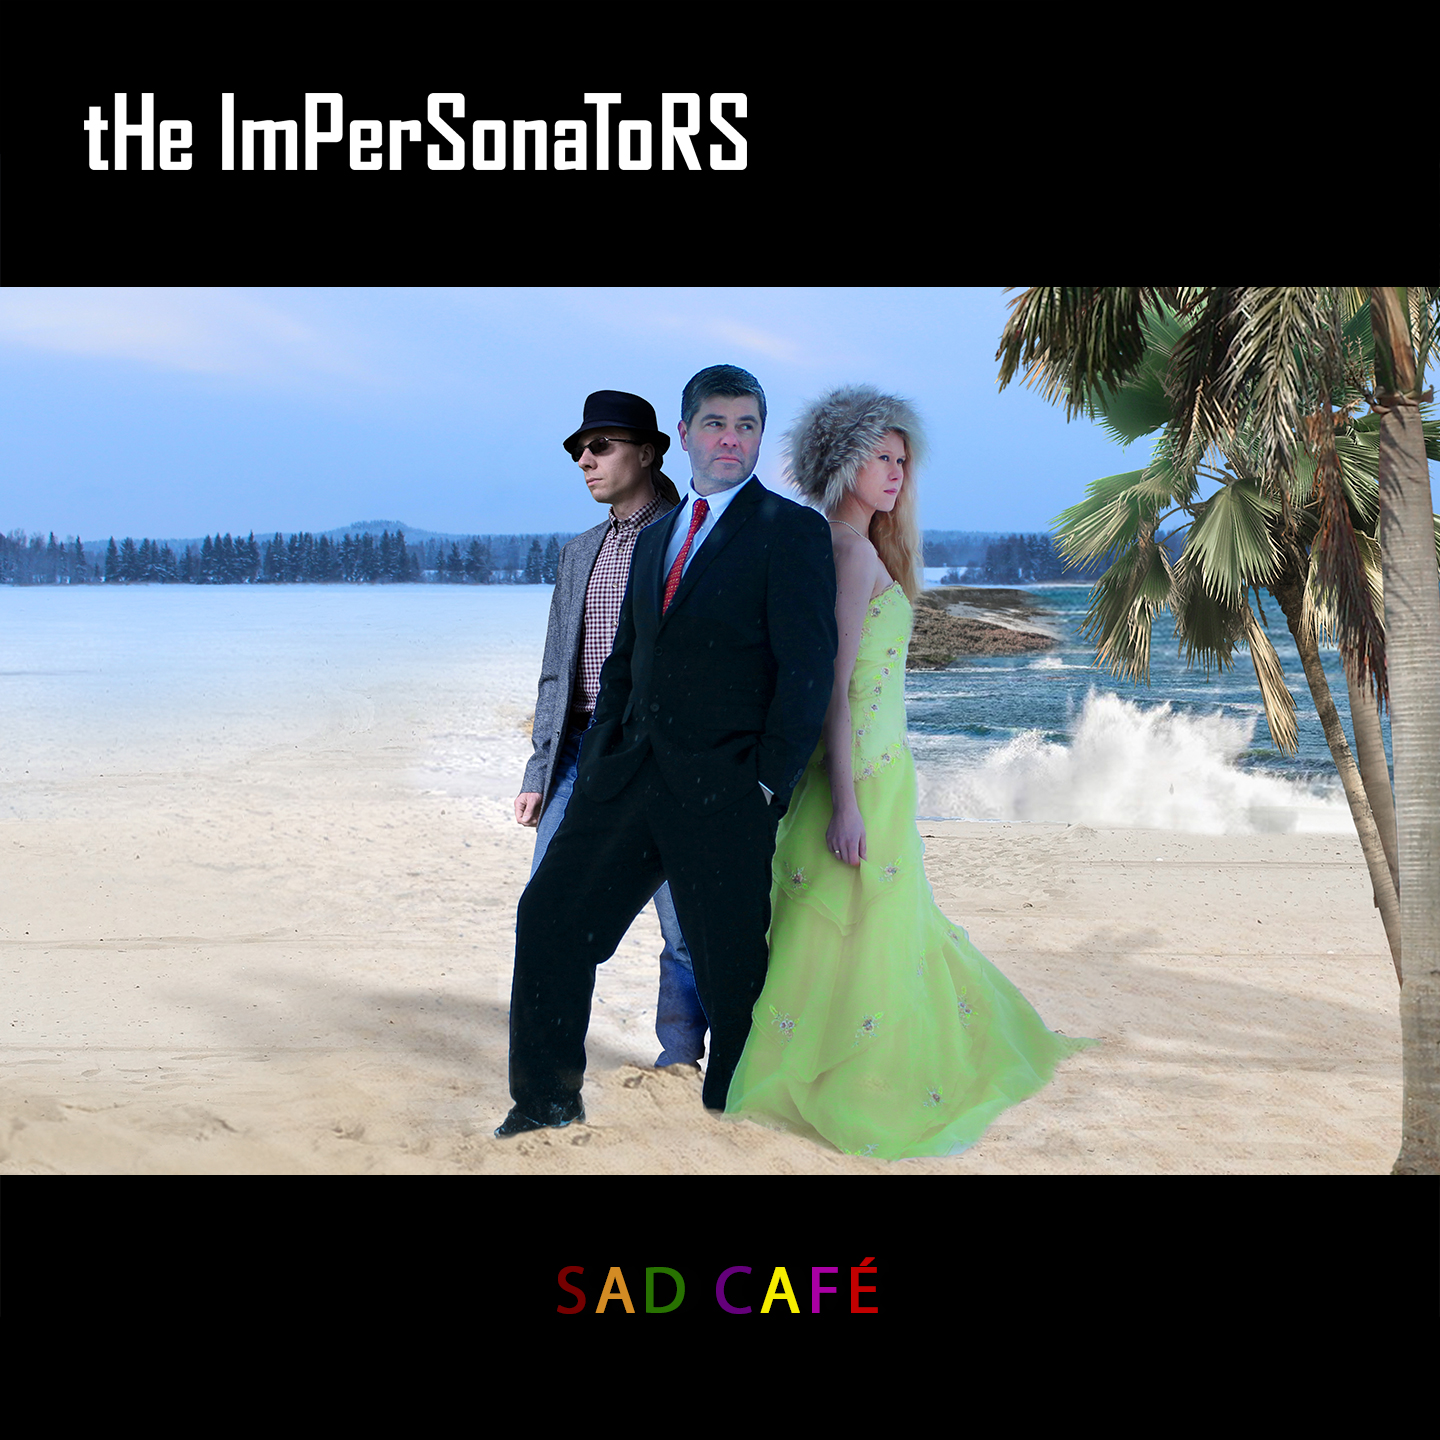 The Impersonators - Sad Cafe EP